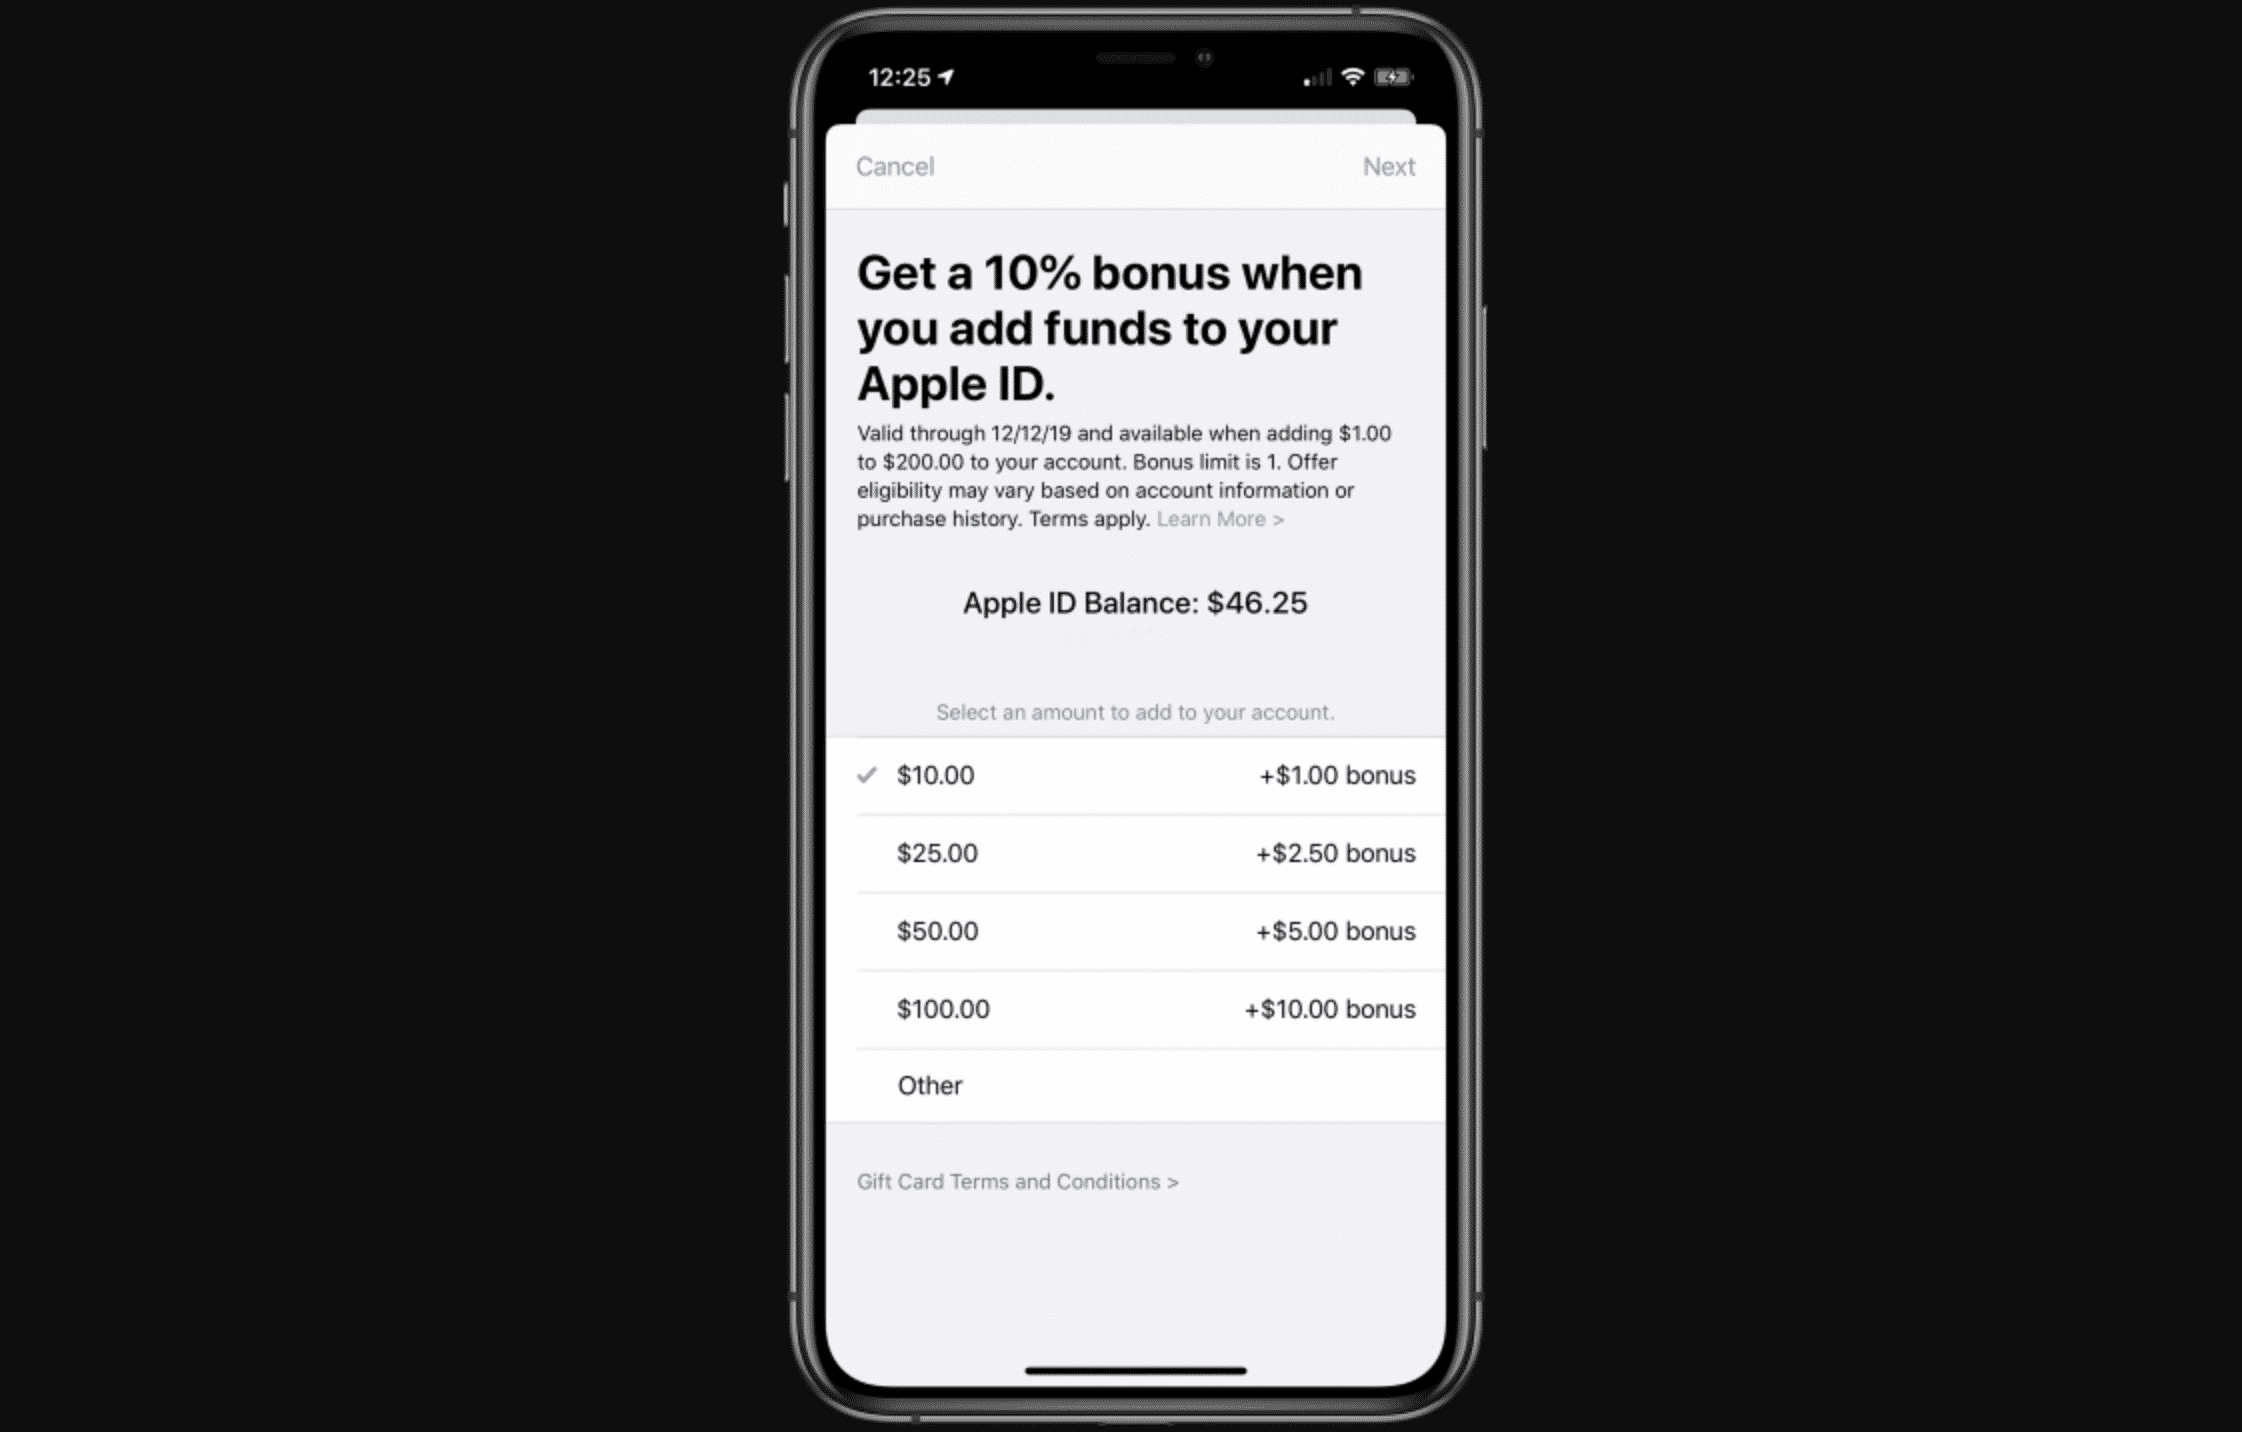 Apple Users can Get Extra 10% iTunes Credit By Adding Funds to Apple ID